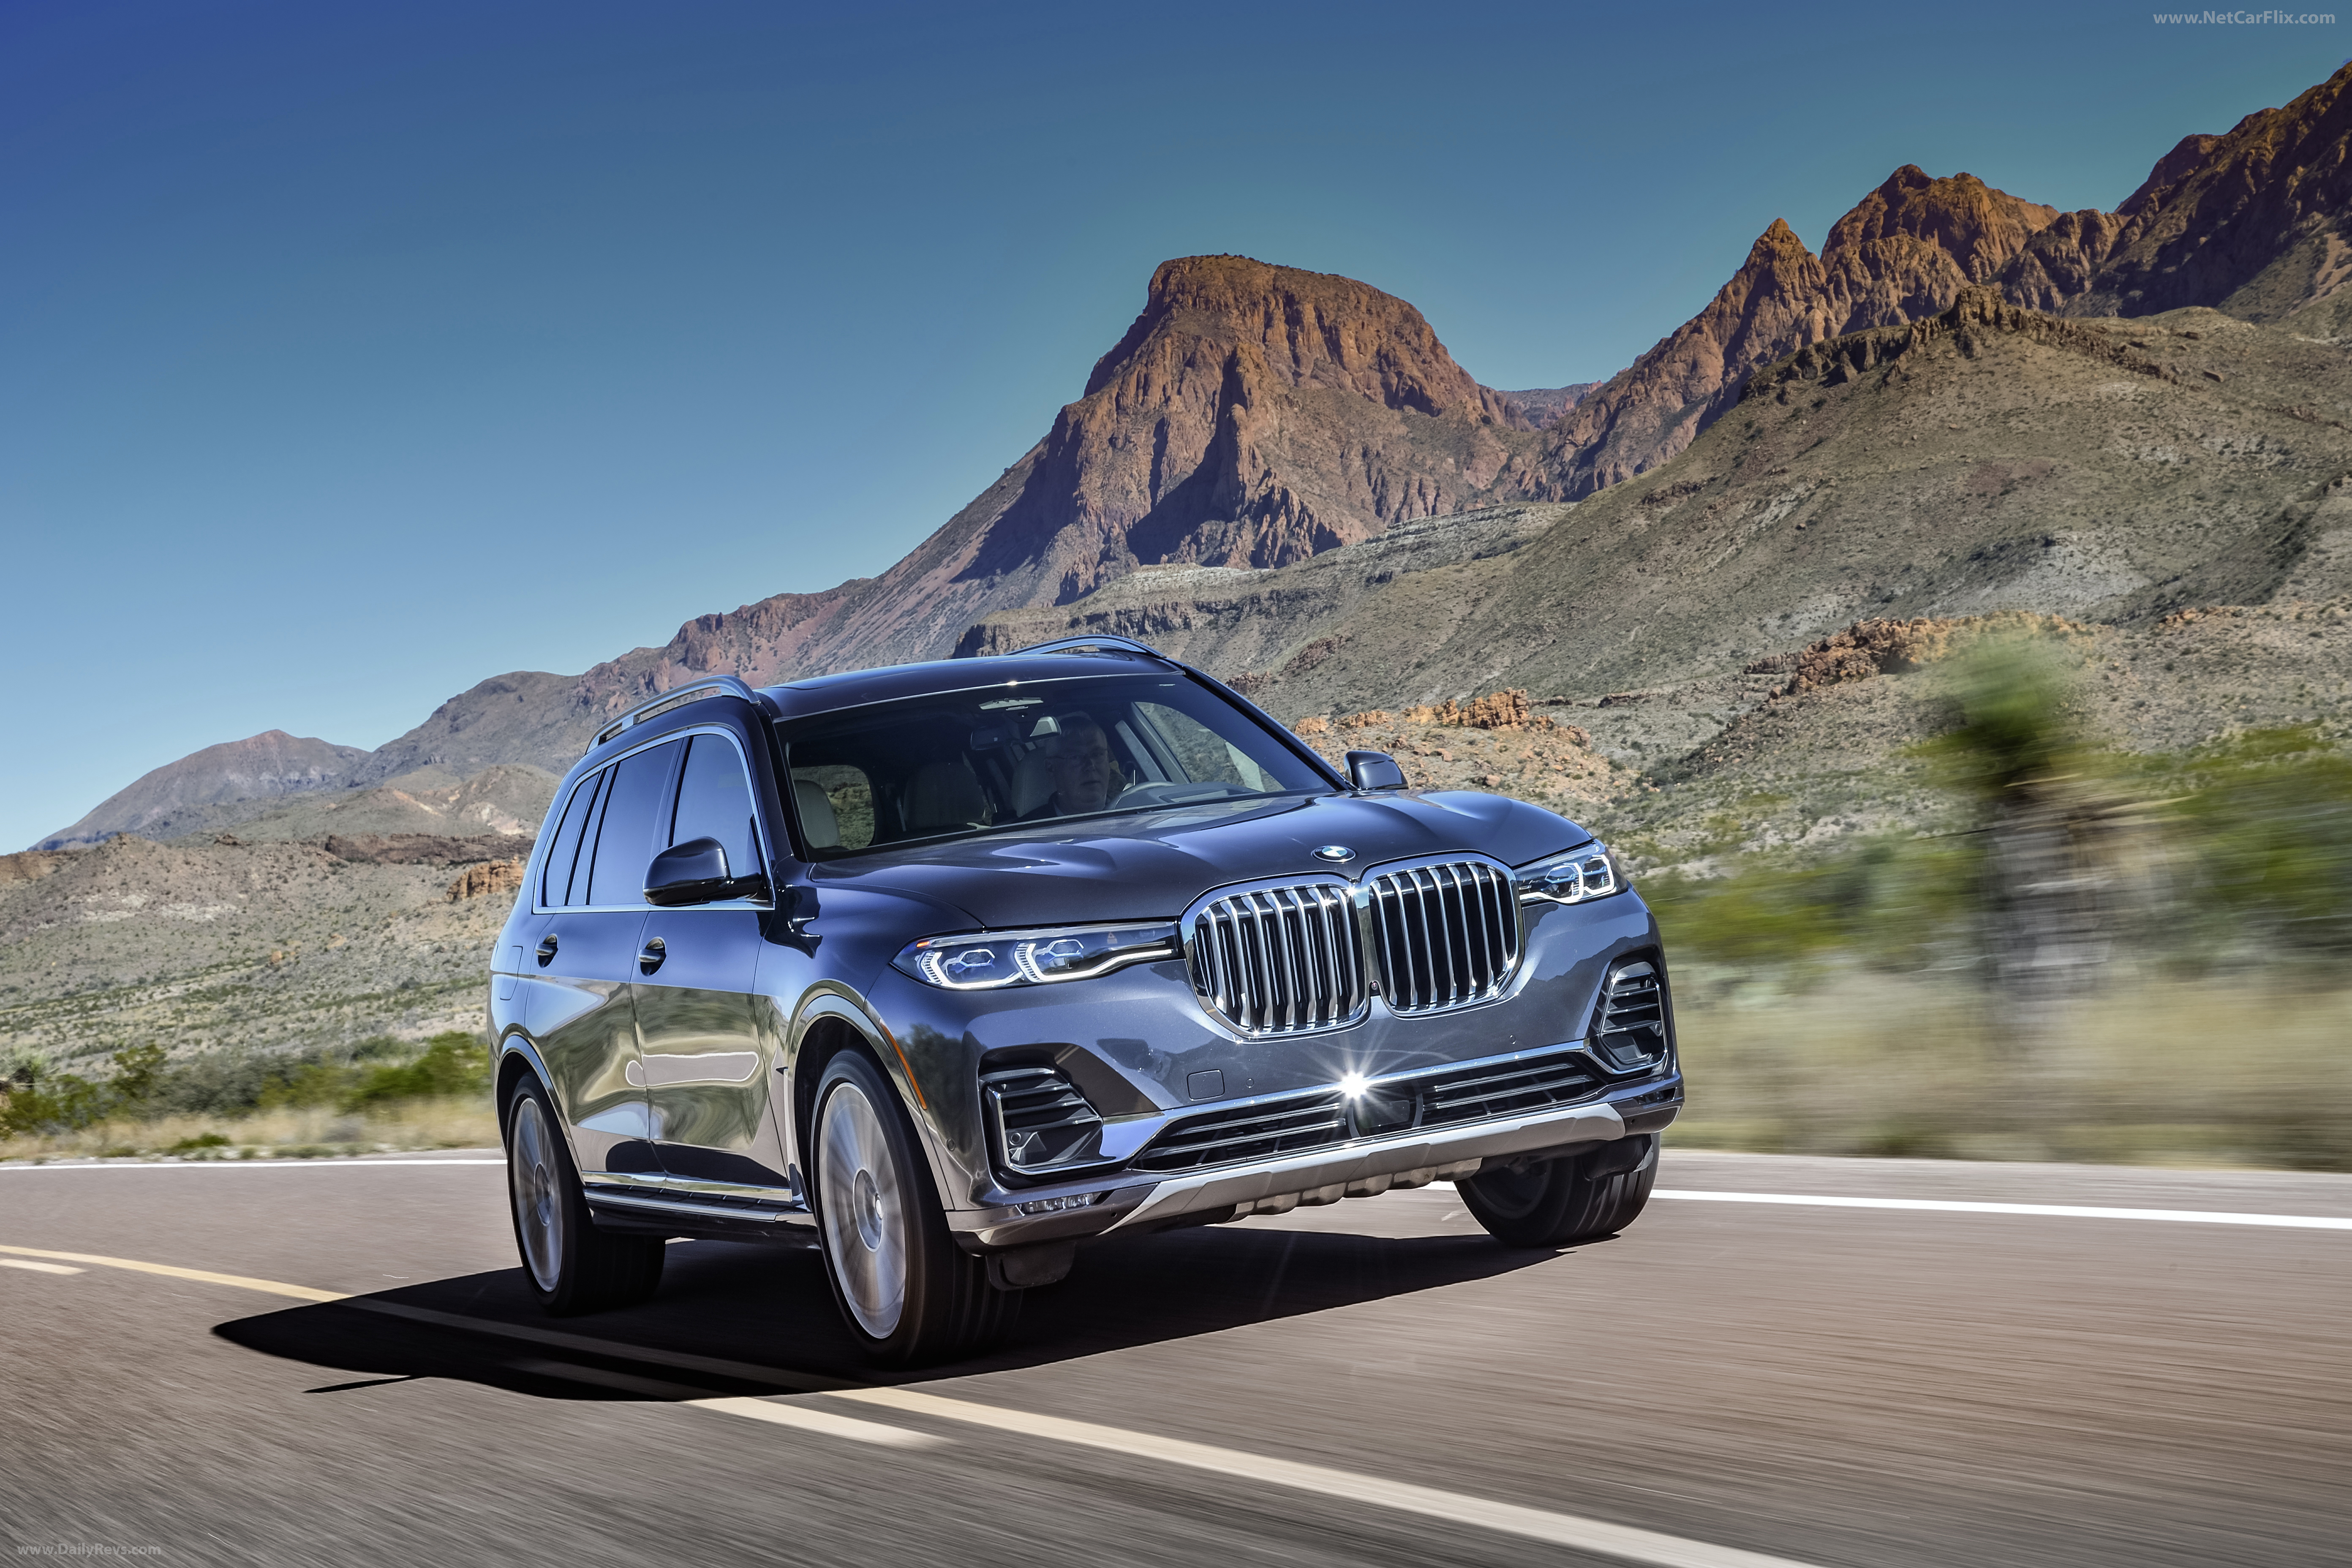 2019 BMW X7 - HD Pictures, Videos, Specs & Information ...